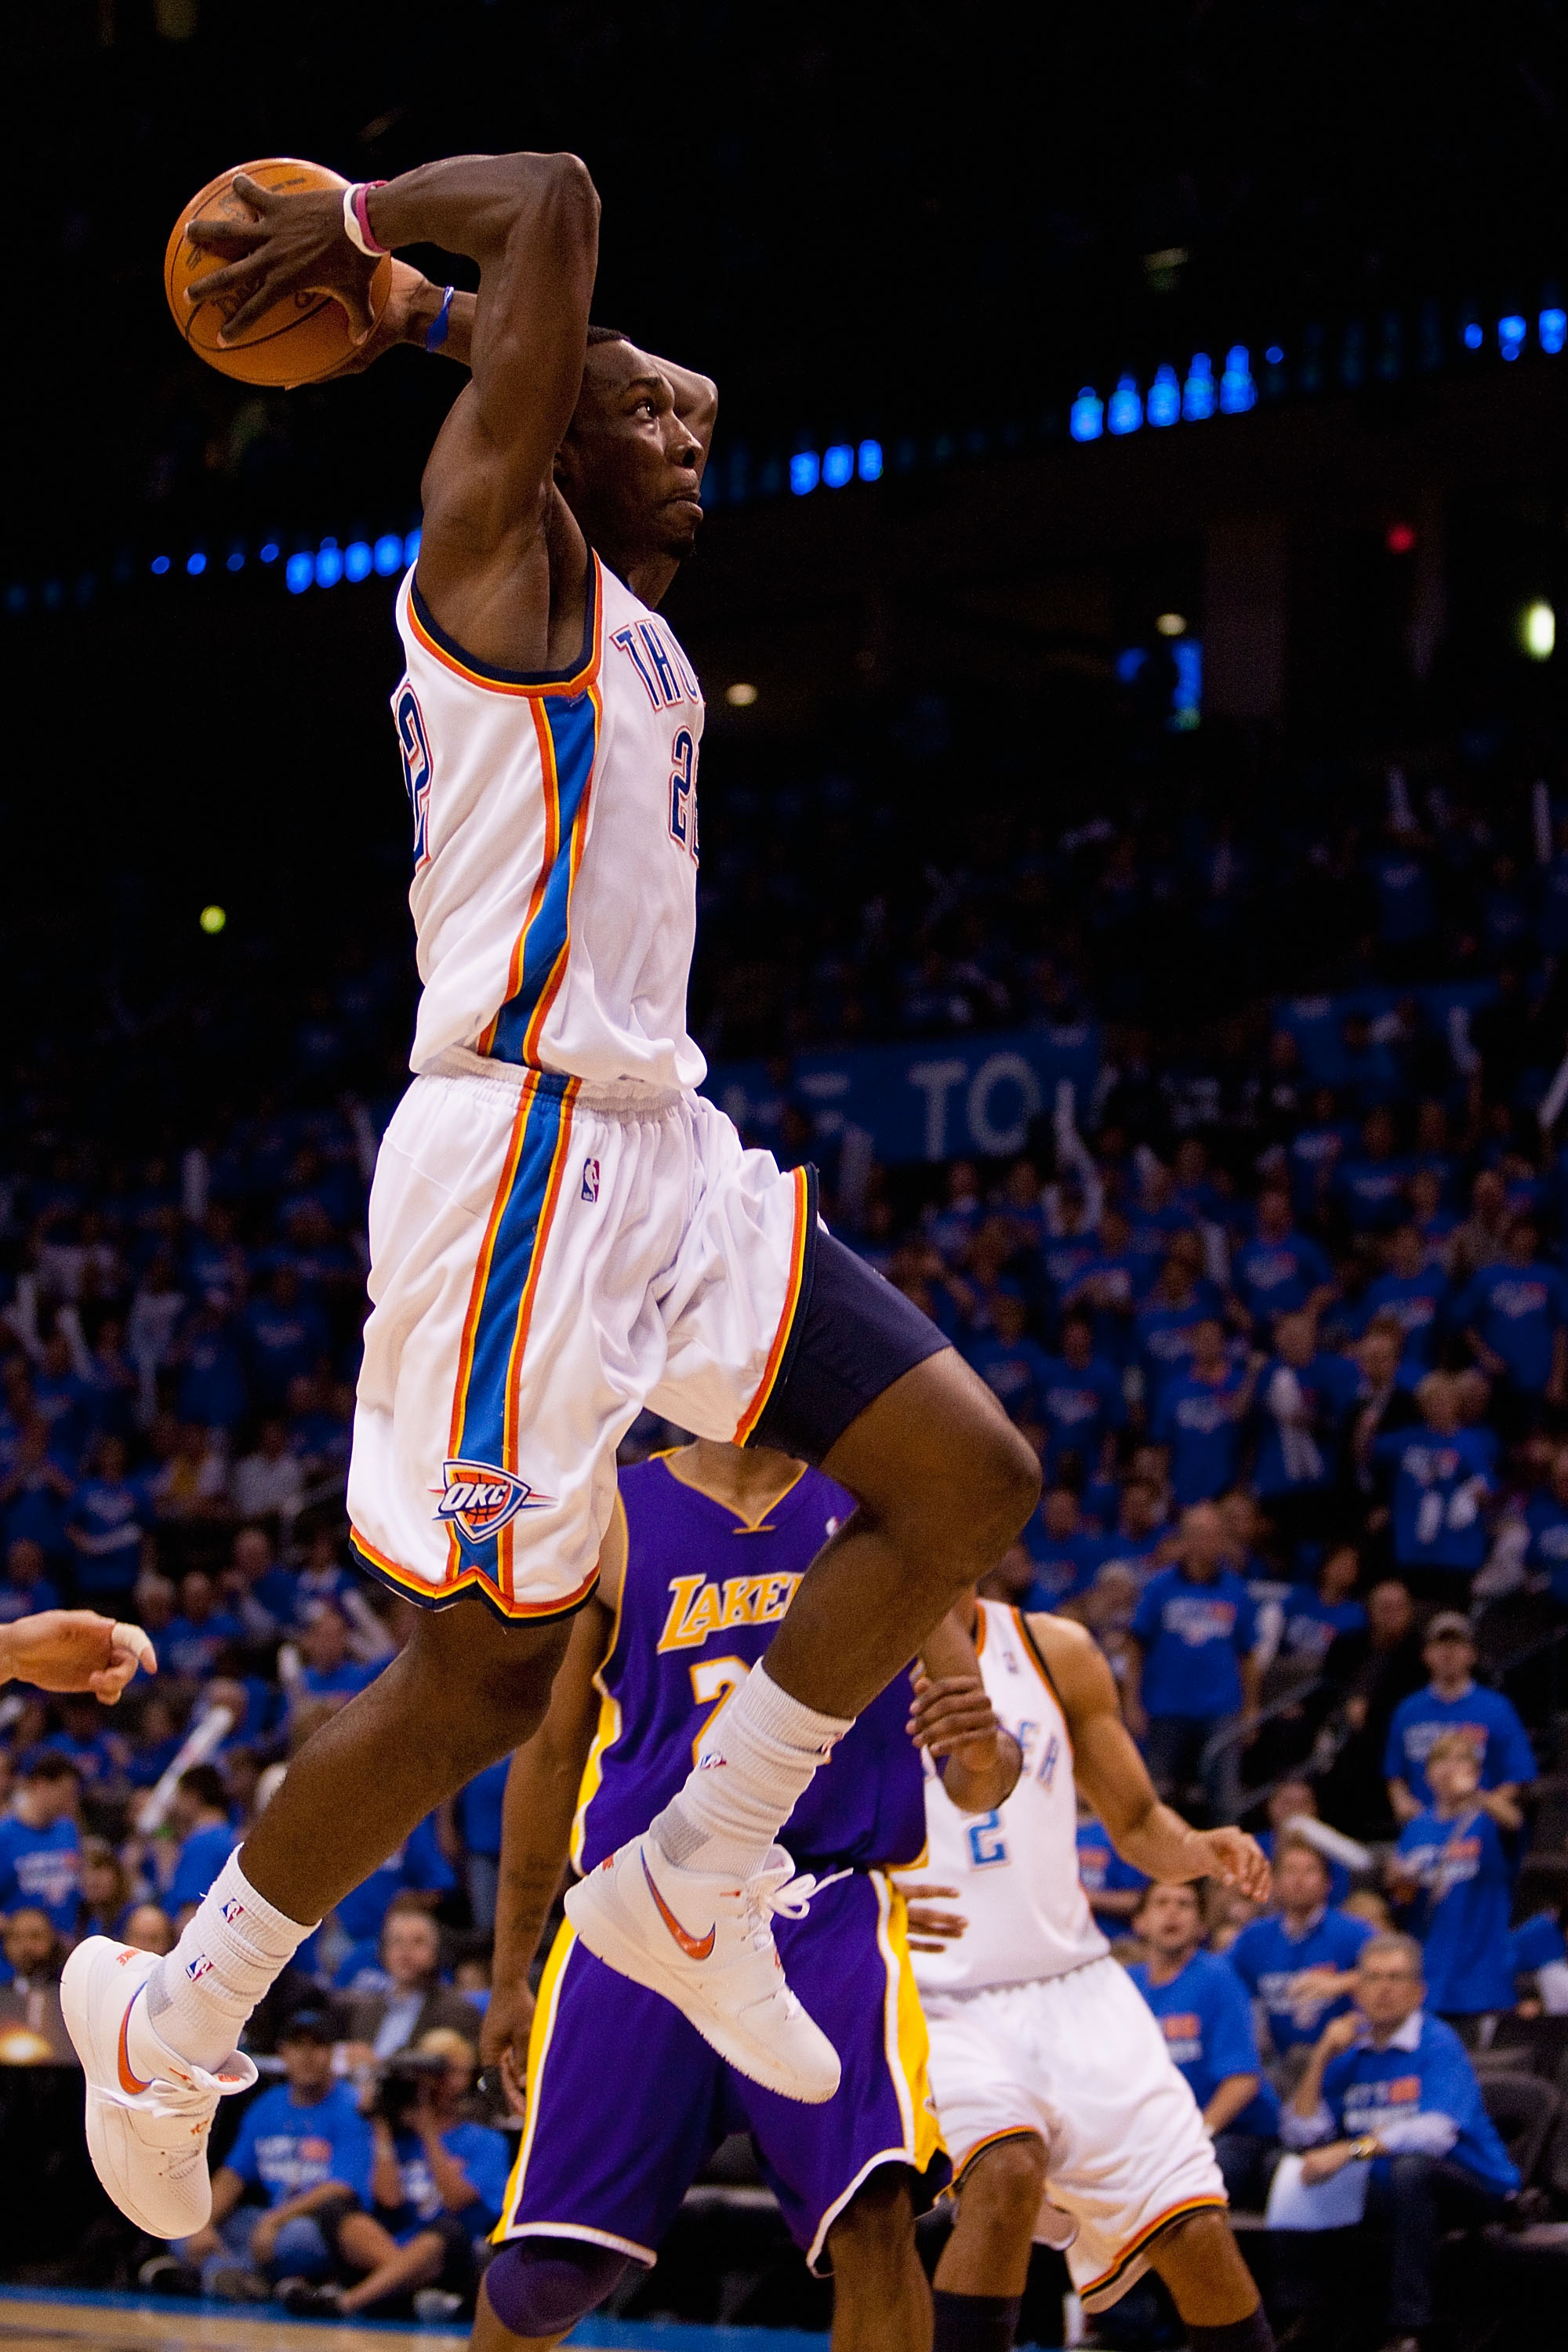 OKLAHOMA CITY - APRIL 30: Jeff Green #22 of the Oklahoma City Thunder flies to the basket against the Los Angeles Lakers during Game Six of the Western Conference Quarterfinals of the 2010 NBA Playoffs on April 30, 2010 at the Ford Center in Oklahoma City